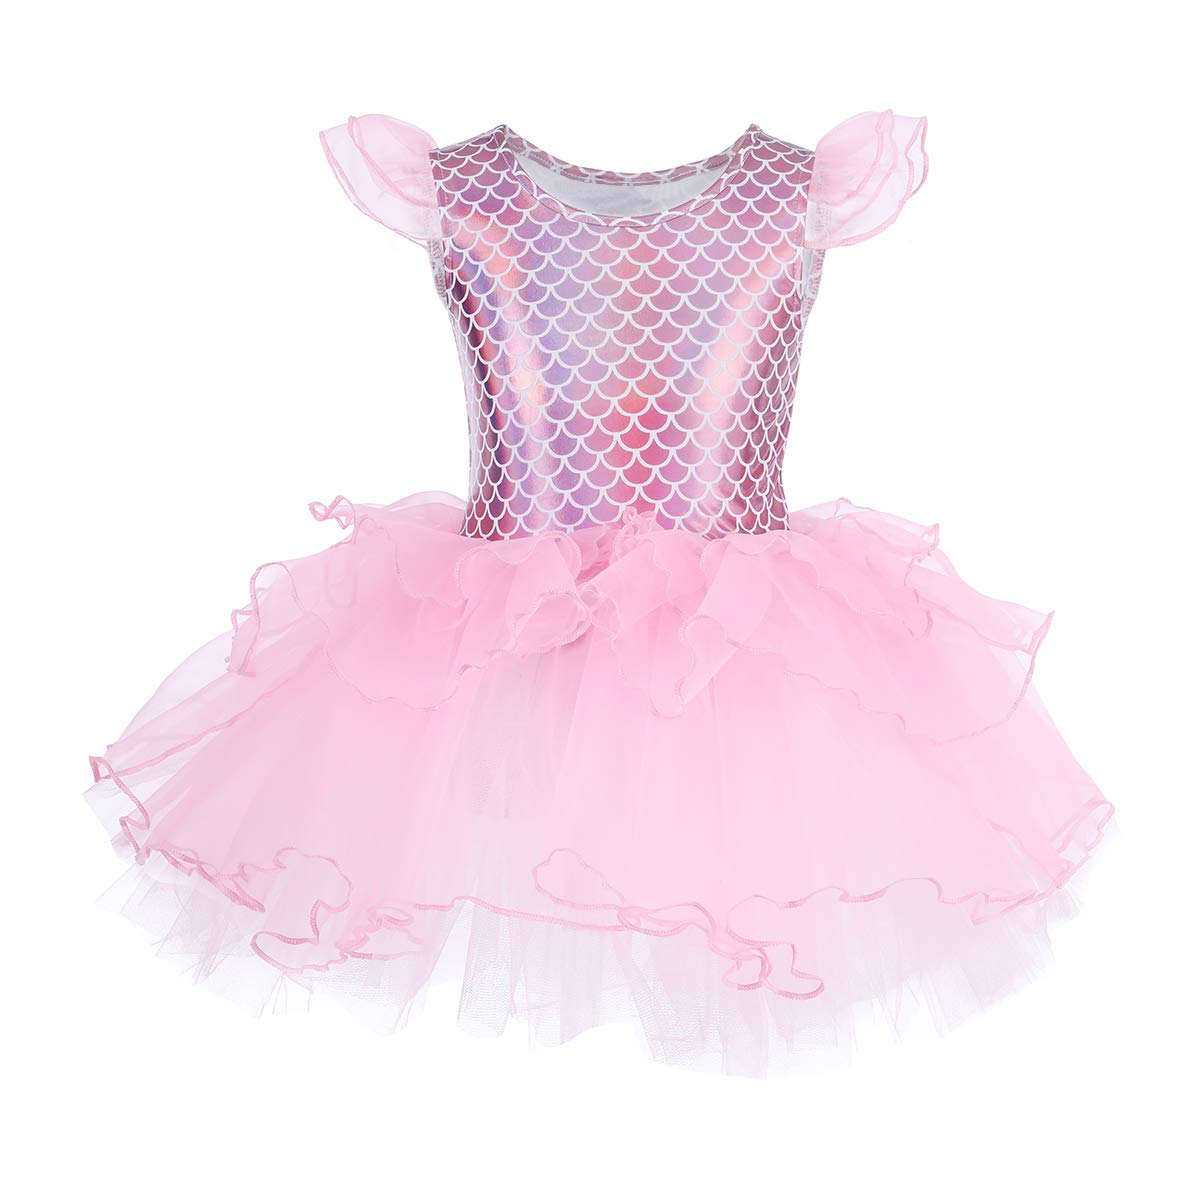 a13d9c588b IWEMEK Girls Ballet Dance Dress Gymnastics Tutu Skirted Costume Dancewear:  Amazon.ca: Clothing & Accessories